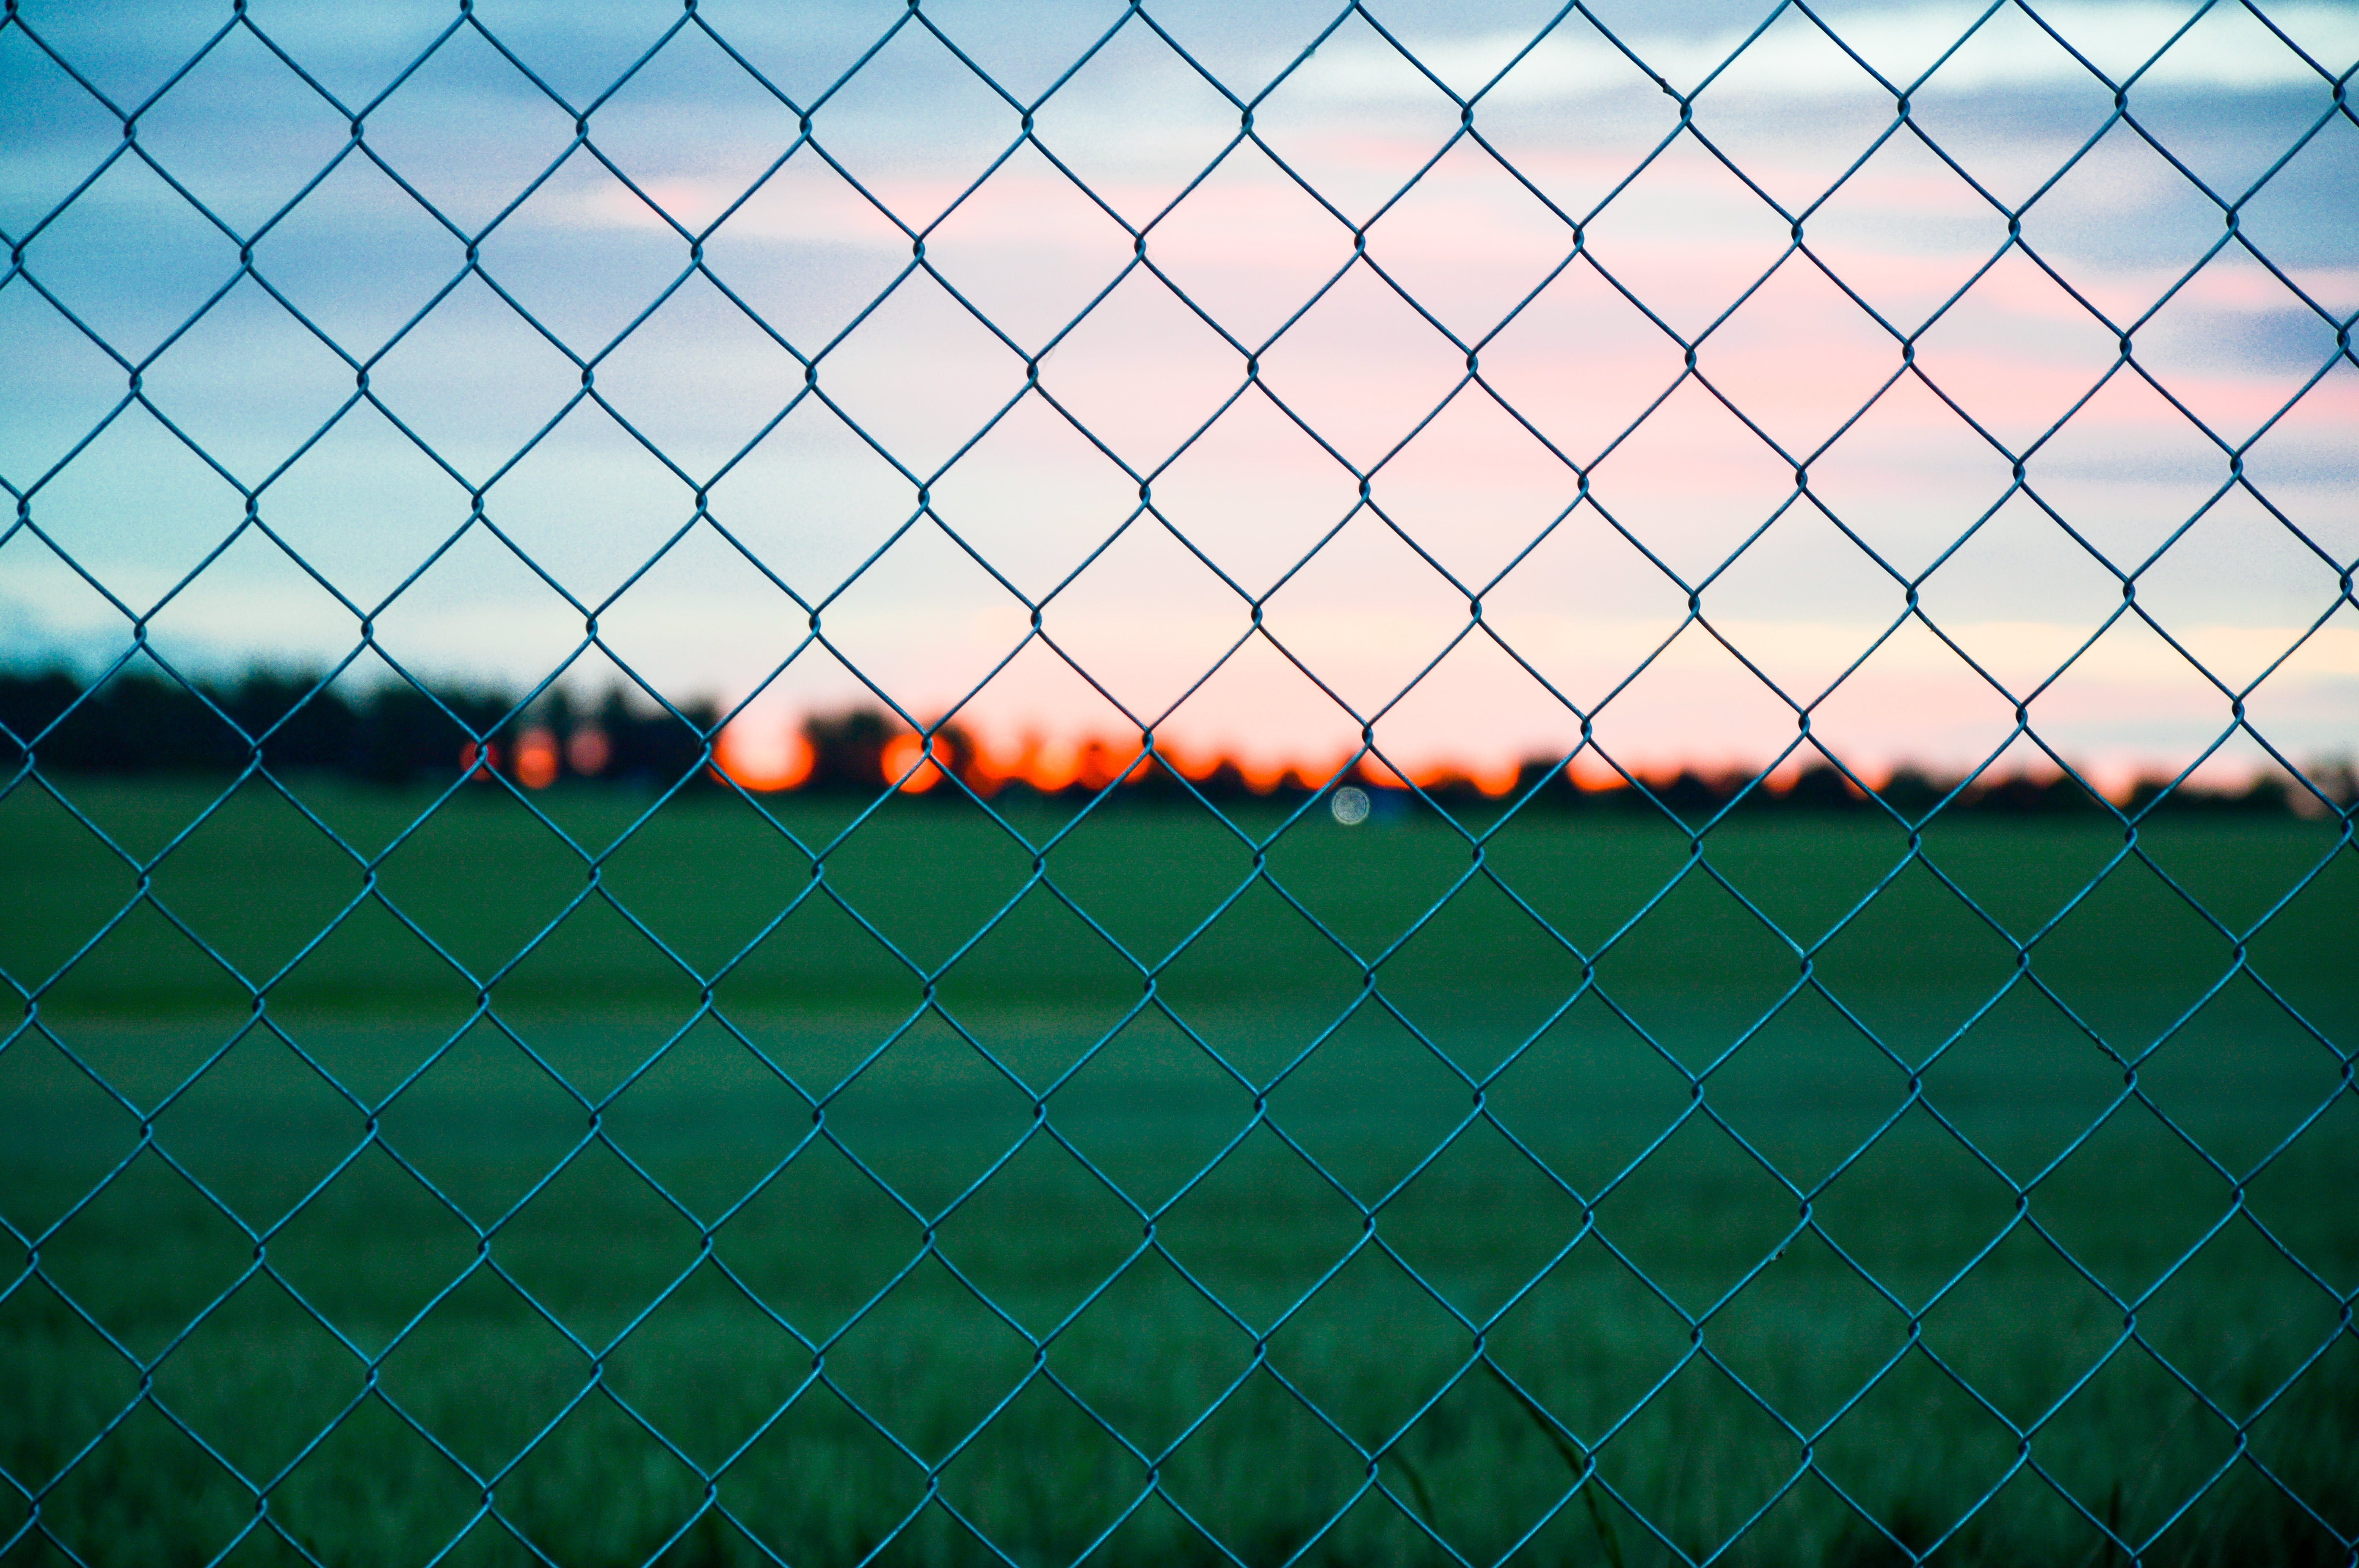 Gray Metal Wire Fence Near Green Grass during Golden Hour Photography